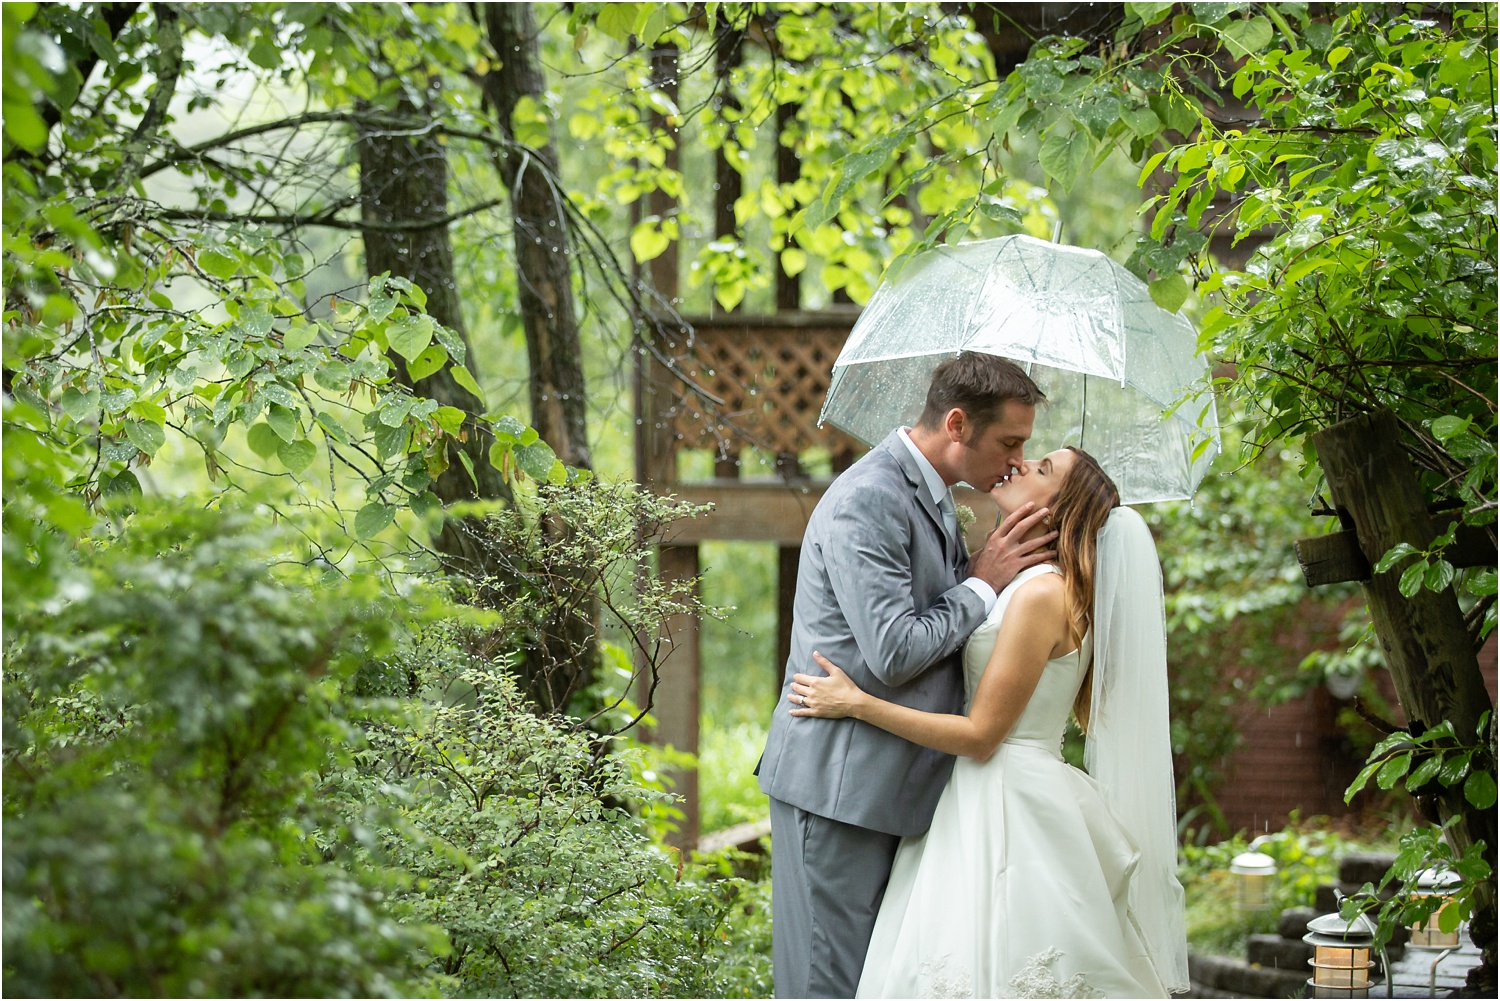 carrieandjeremy_maryngravesproduction_wvweddings_0505.jpg